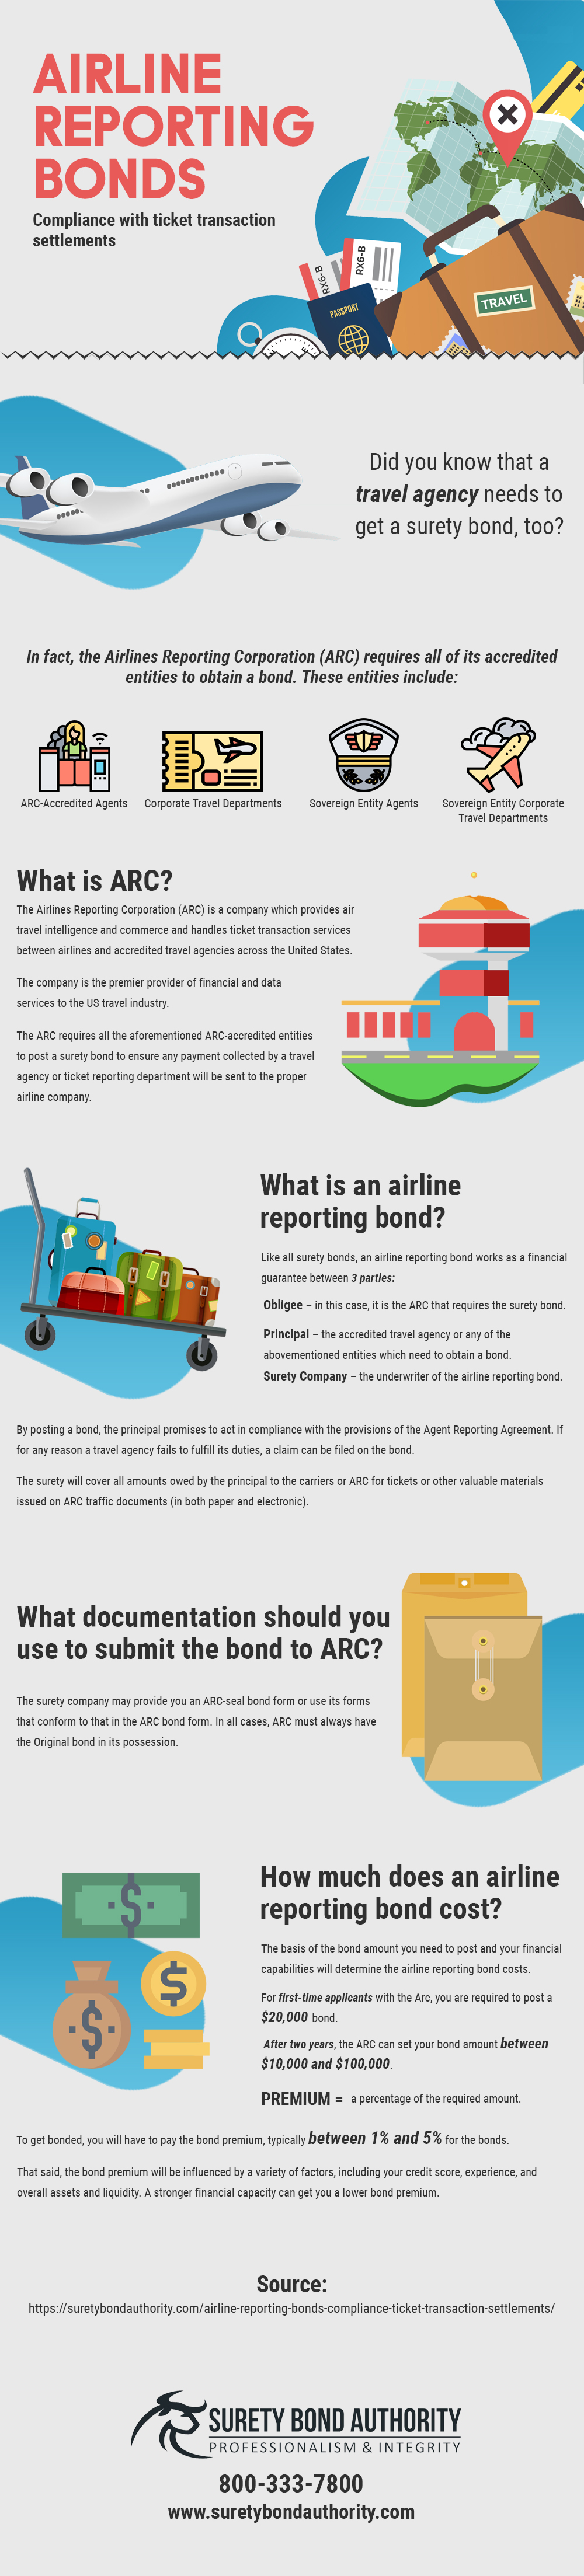 Airline Reporting Bonds Infographic